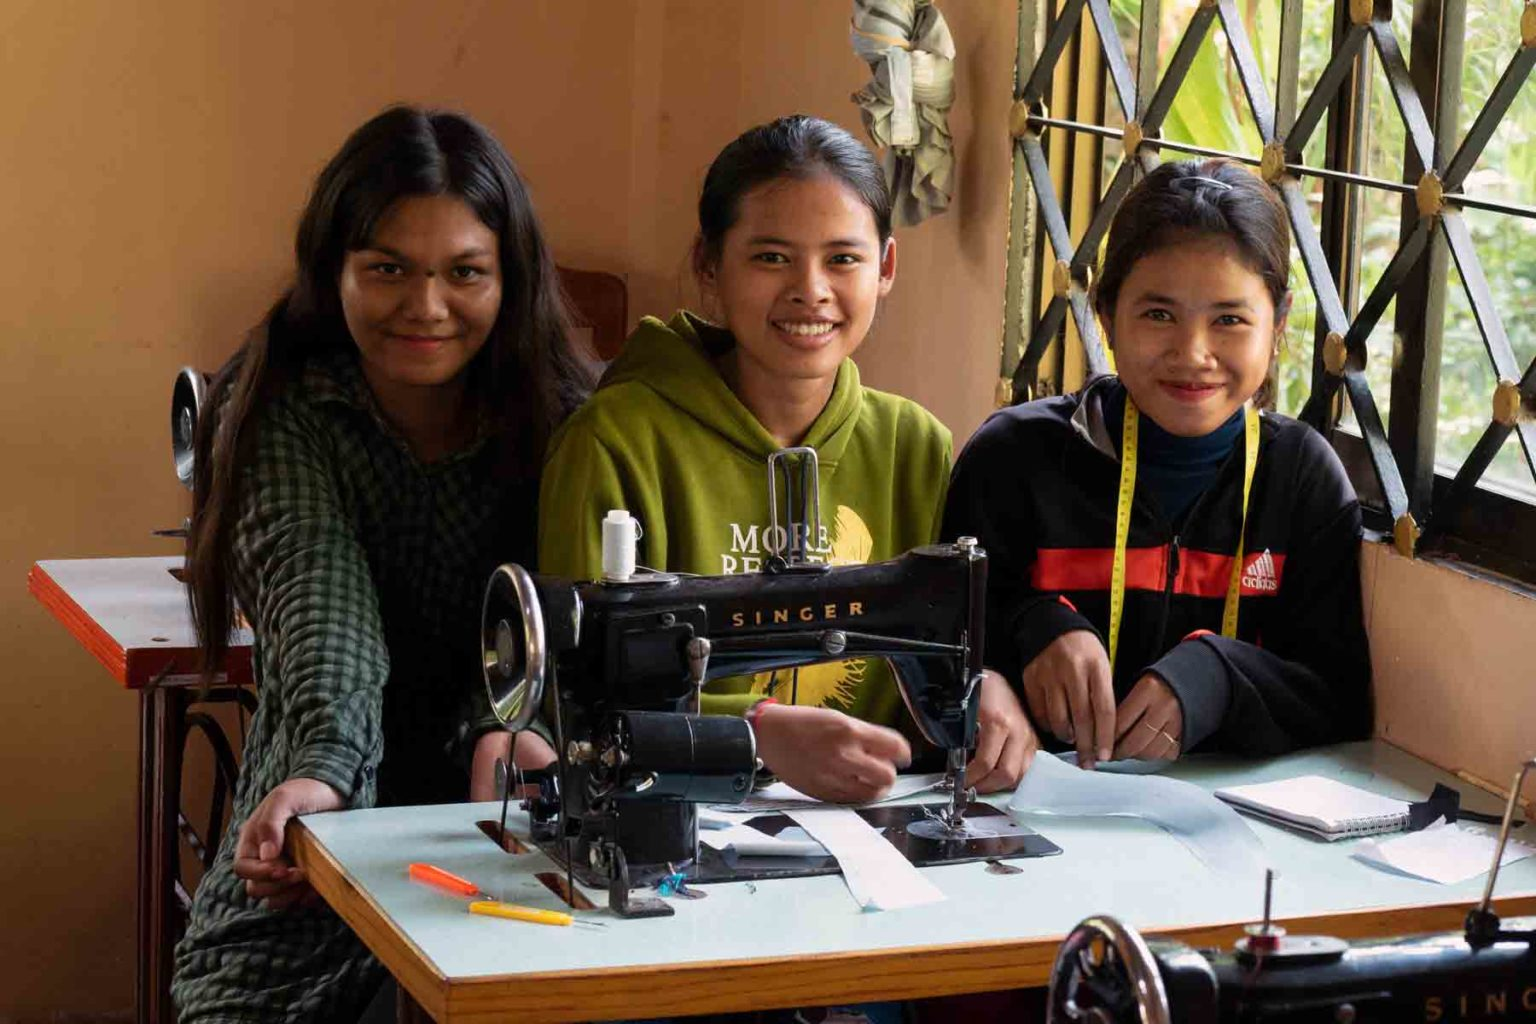 Young Cambodian girls studying fashion design and sewing at a training center in Battambang, Cambodia.